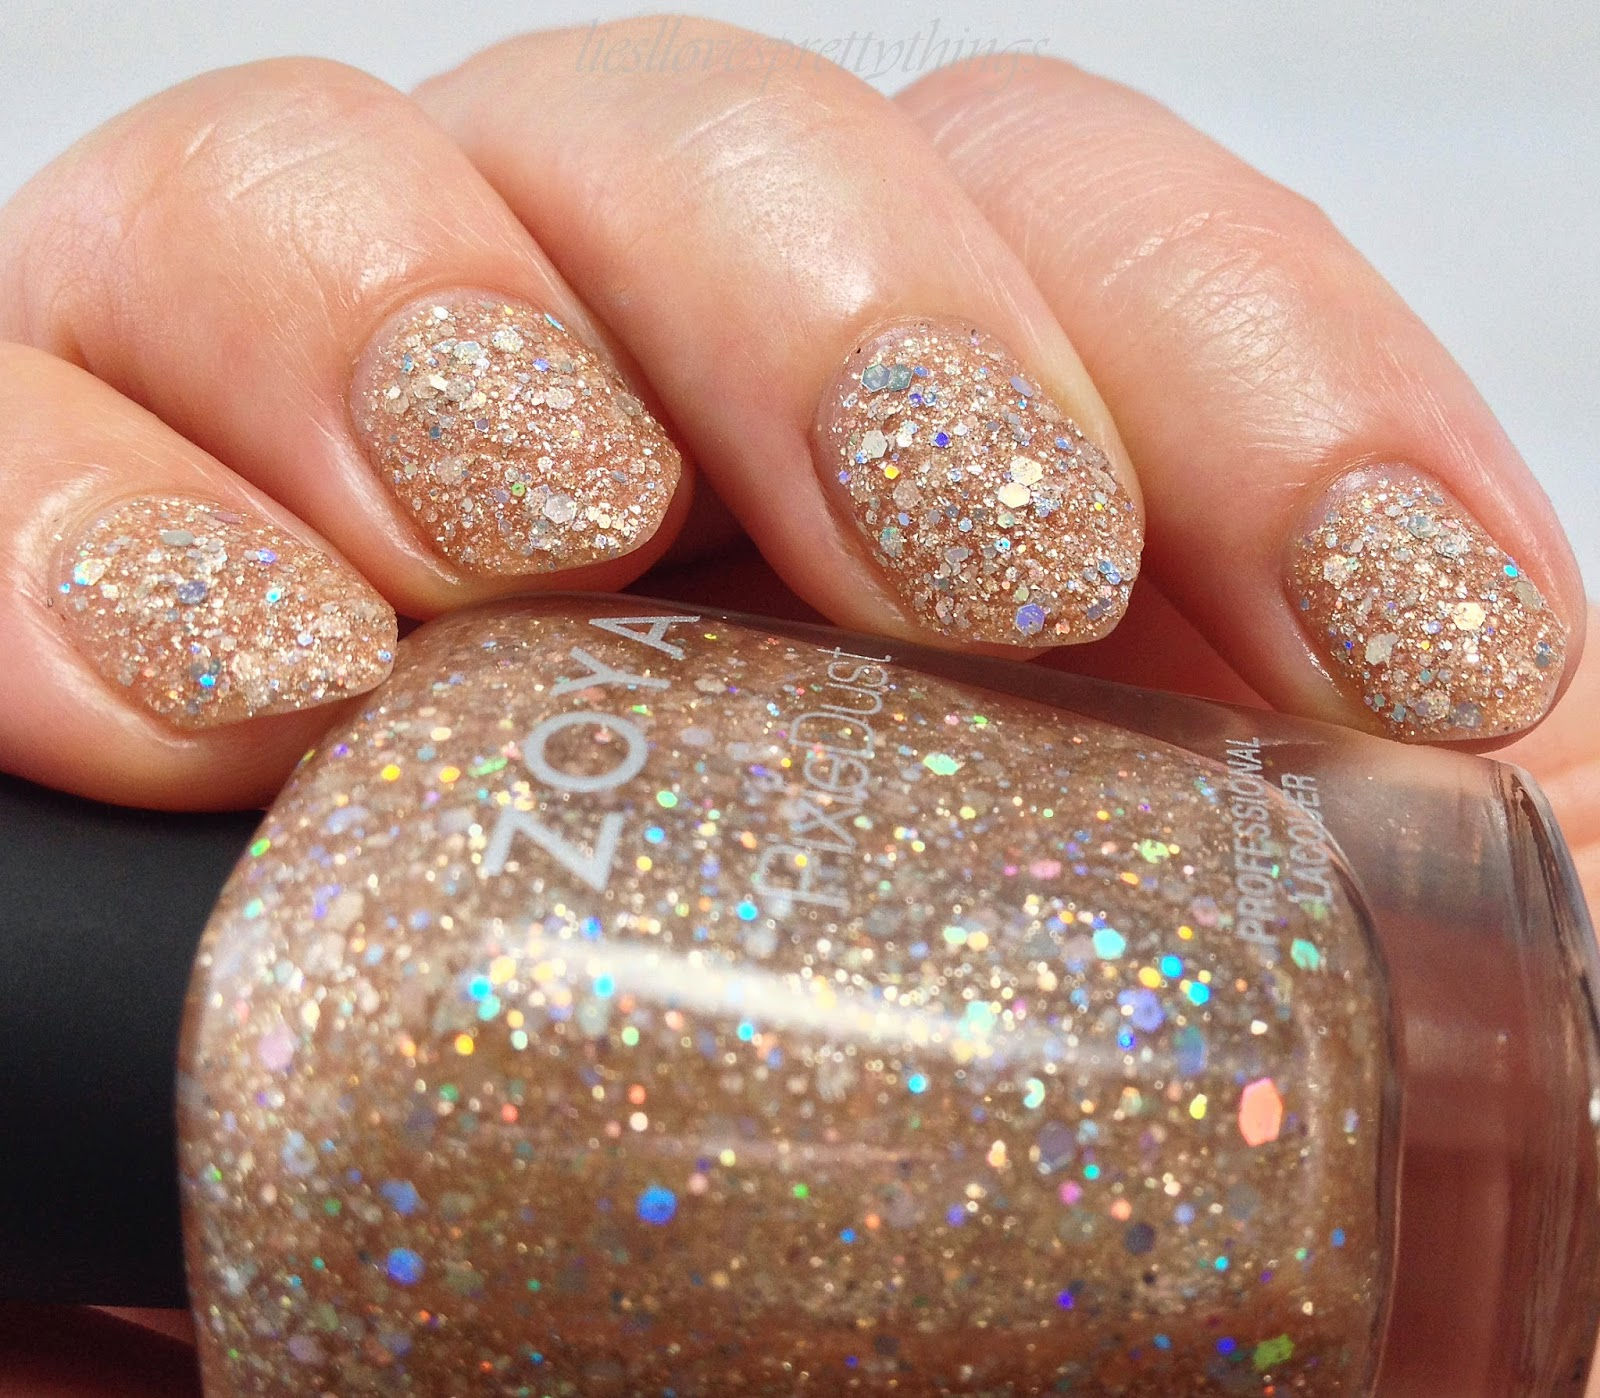 Zoya Magical Pixie Bar swatch and review